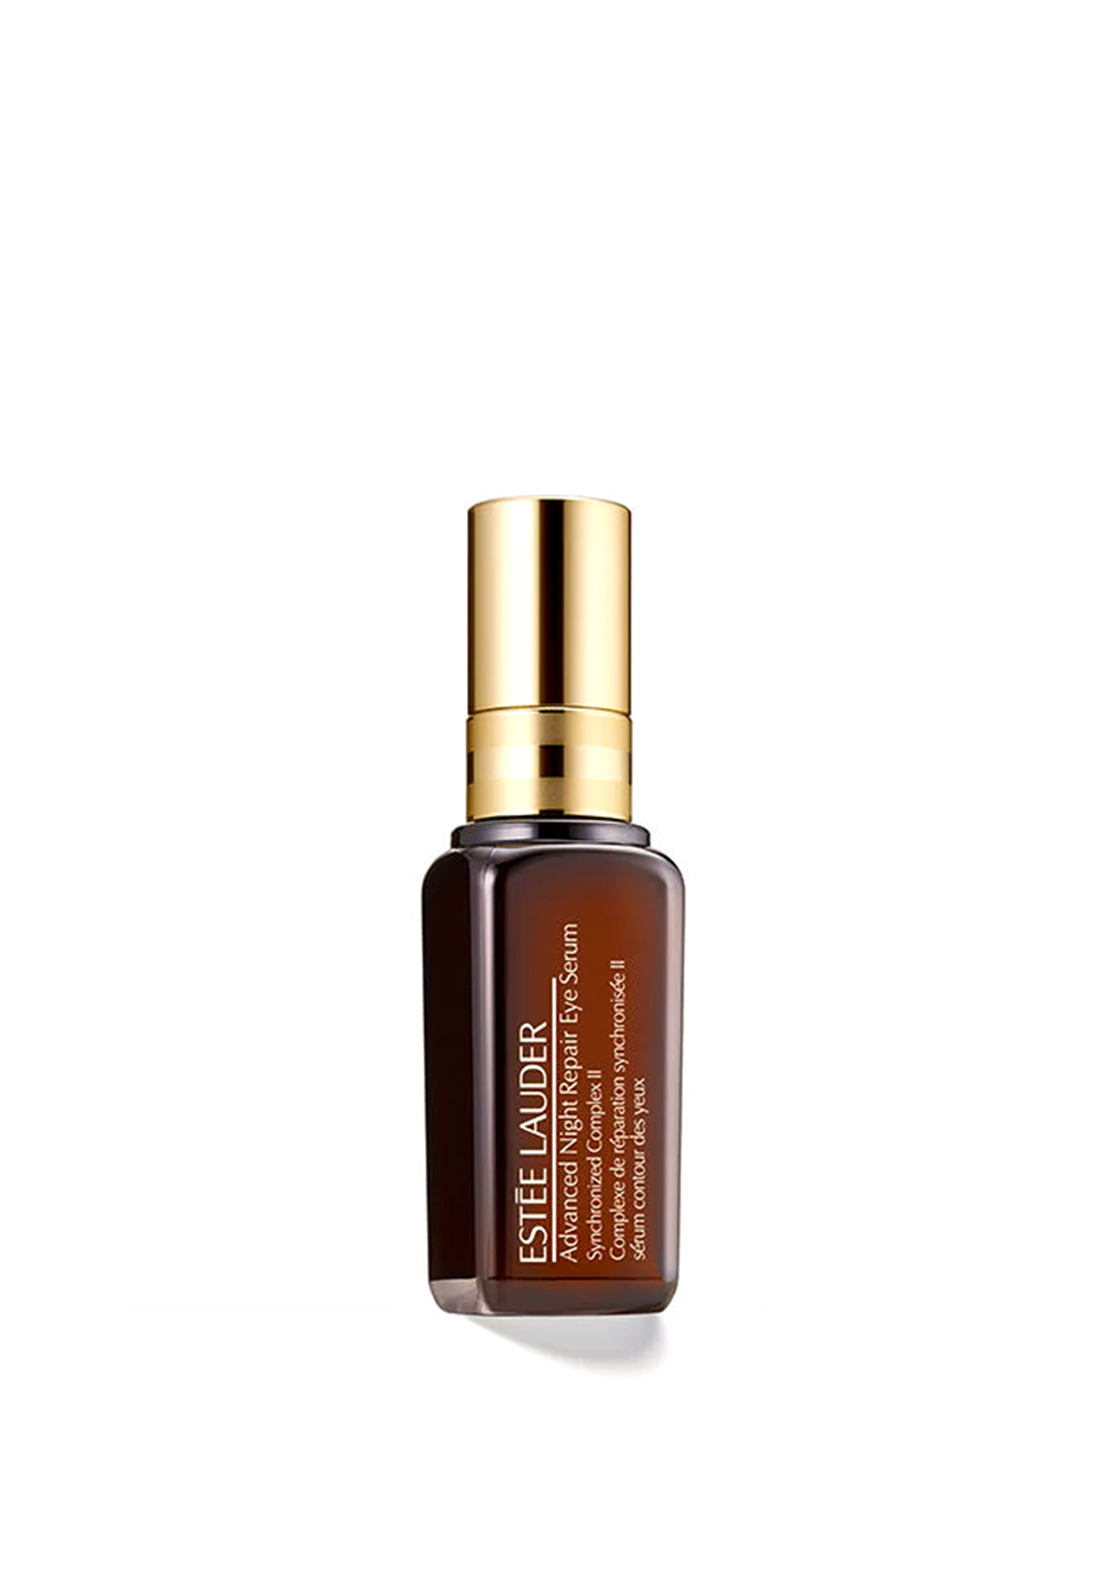 Estee Lauder Advanced Night Repair Eye Serum, 15ml